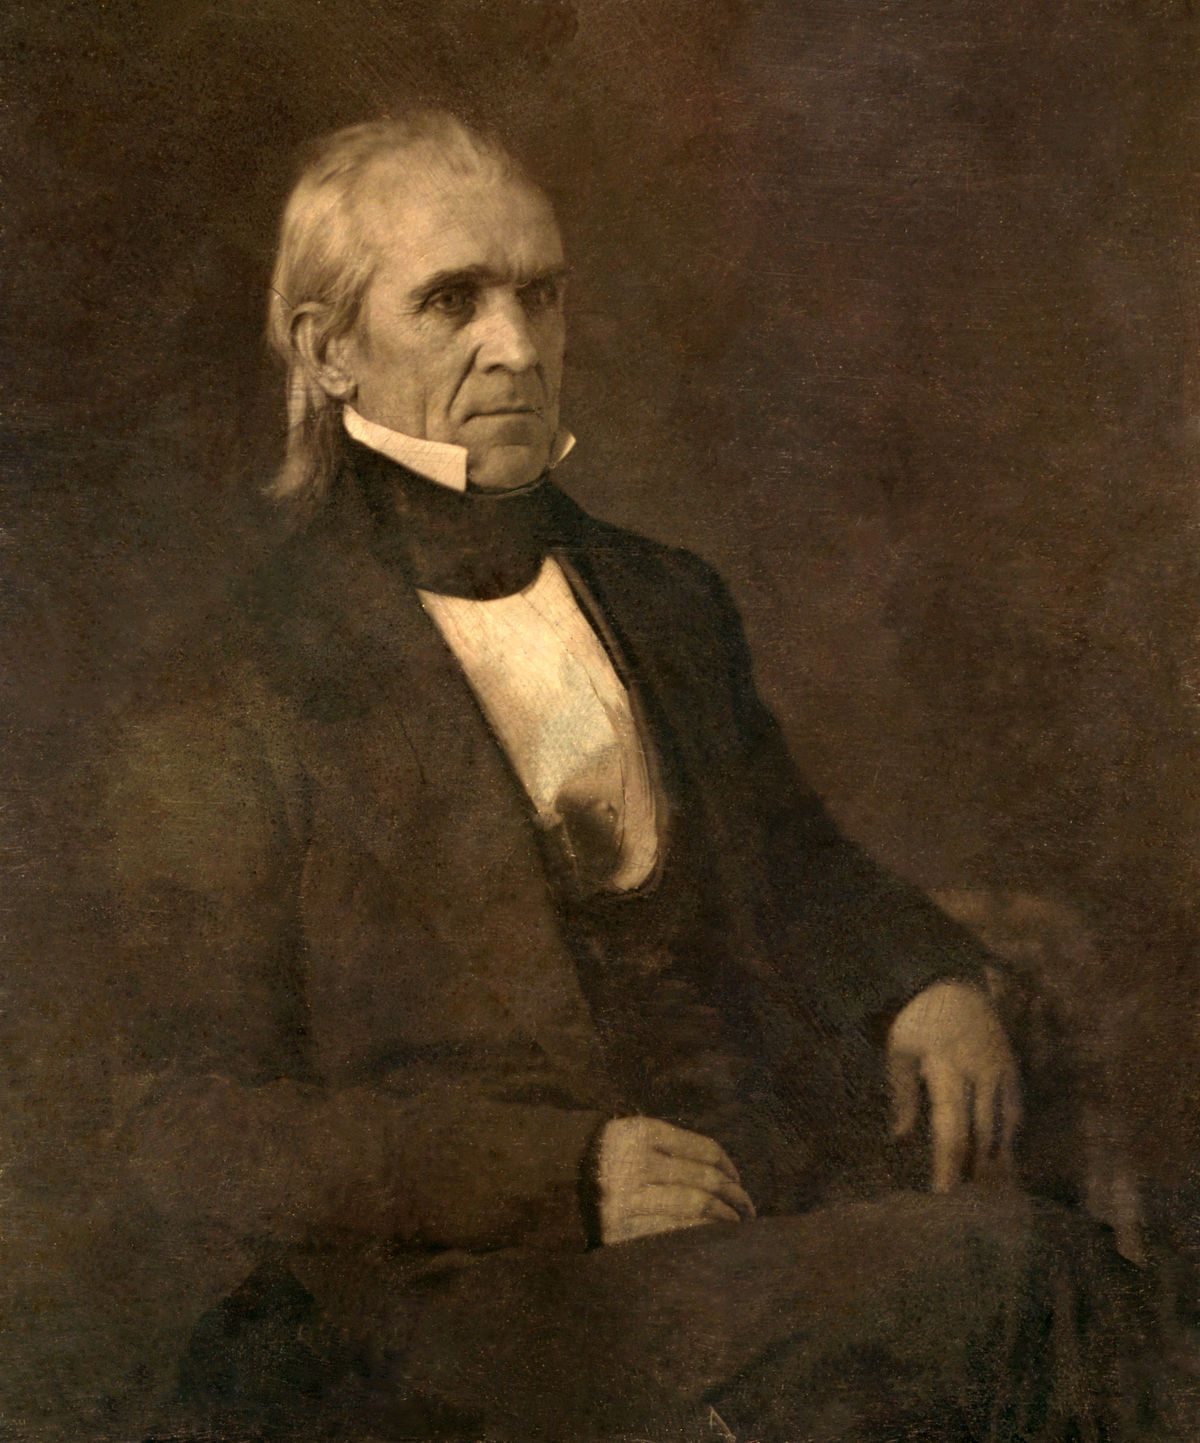 James K Polk Wikipedia Empire Club Pinterest Protestant - Wiki us presidents